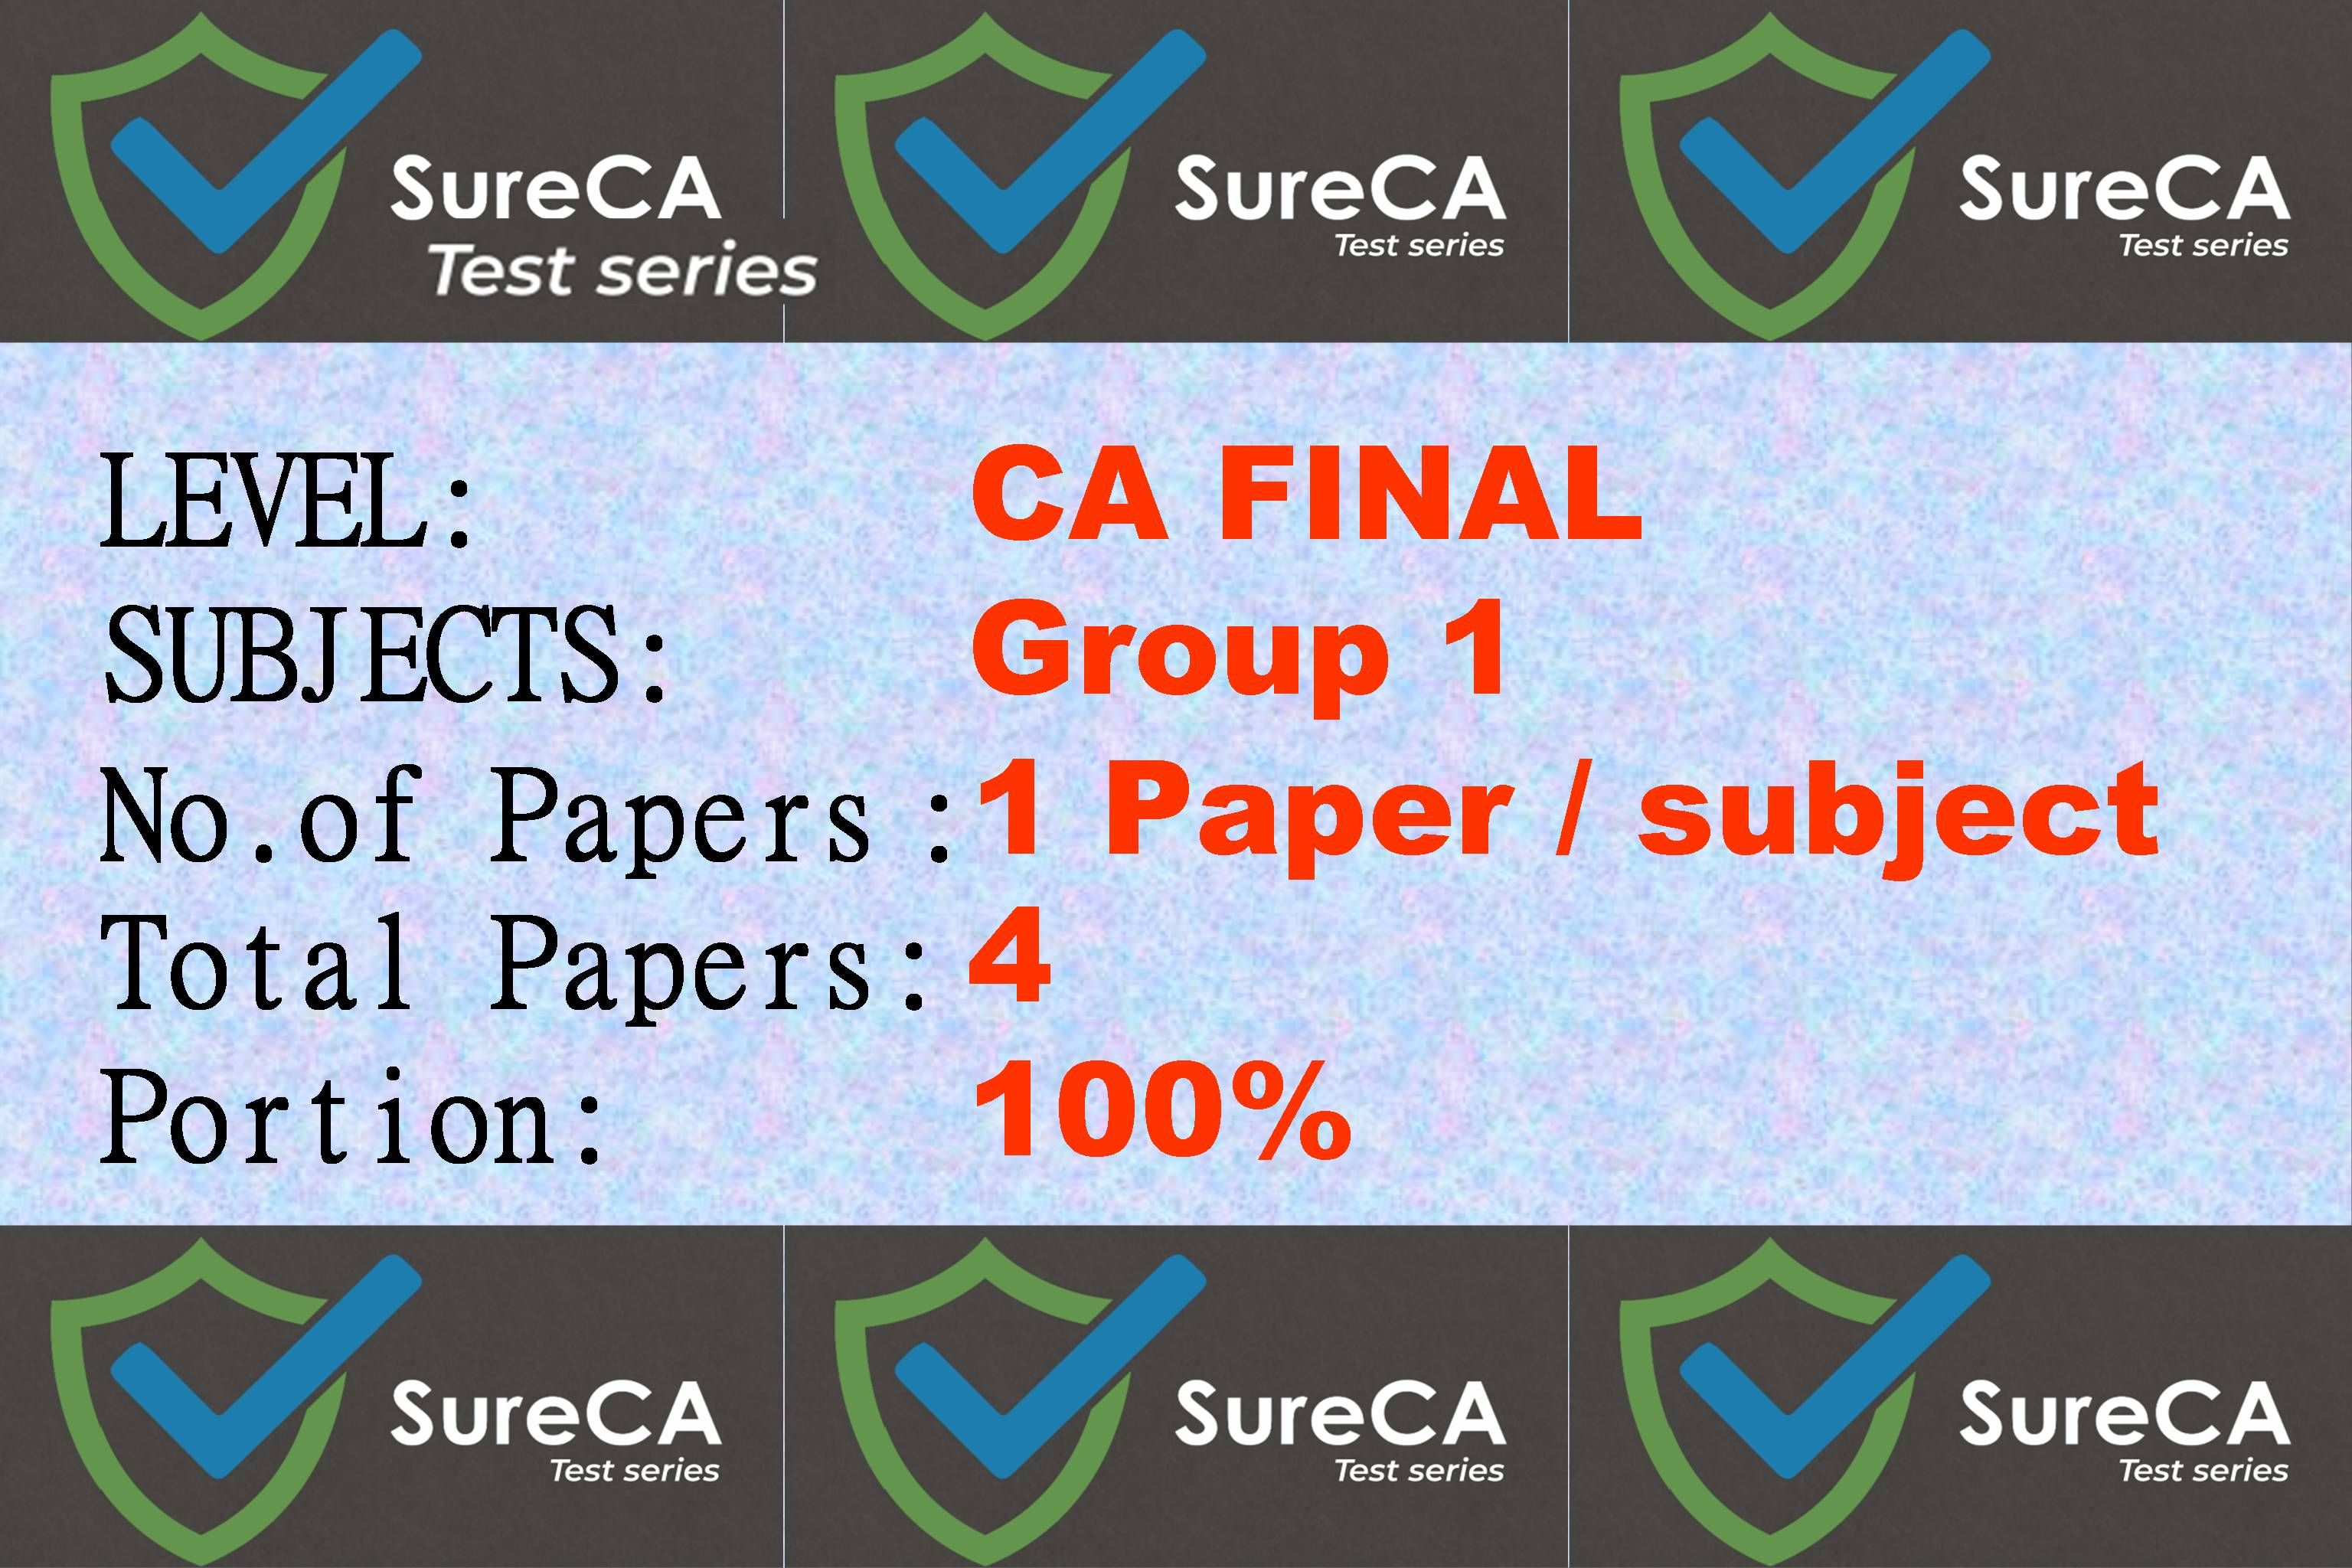 #5 –  SURE CA – CAFINAL – Test Series – Group 1 – 4 Papers